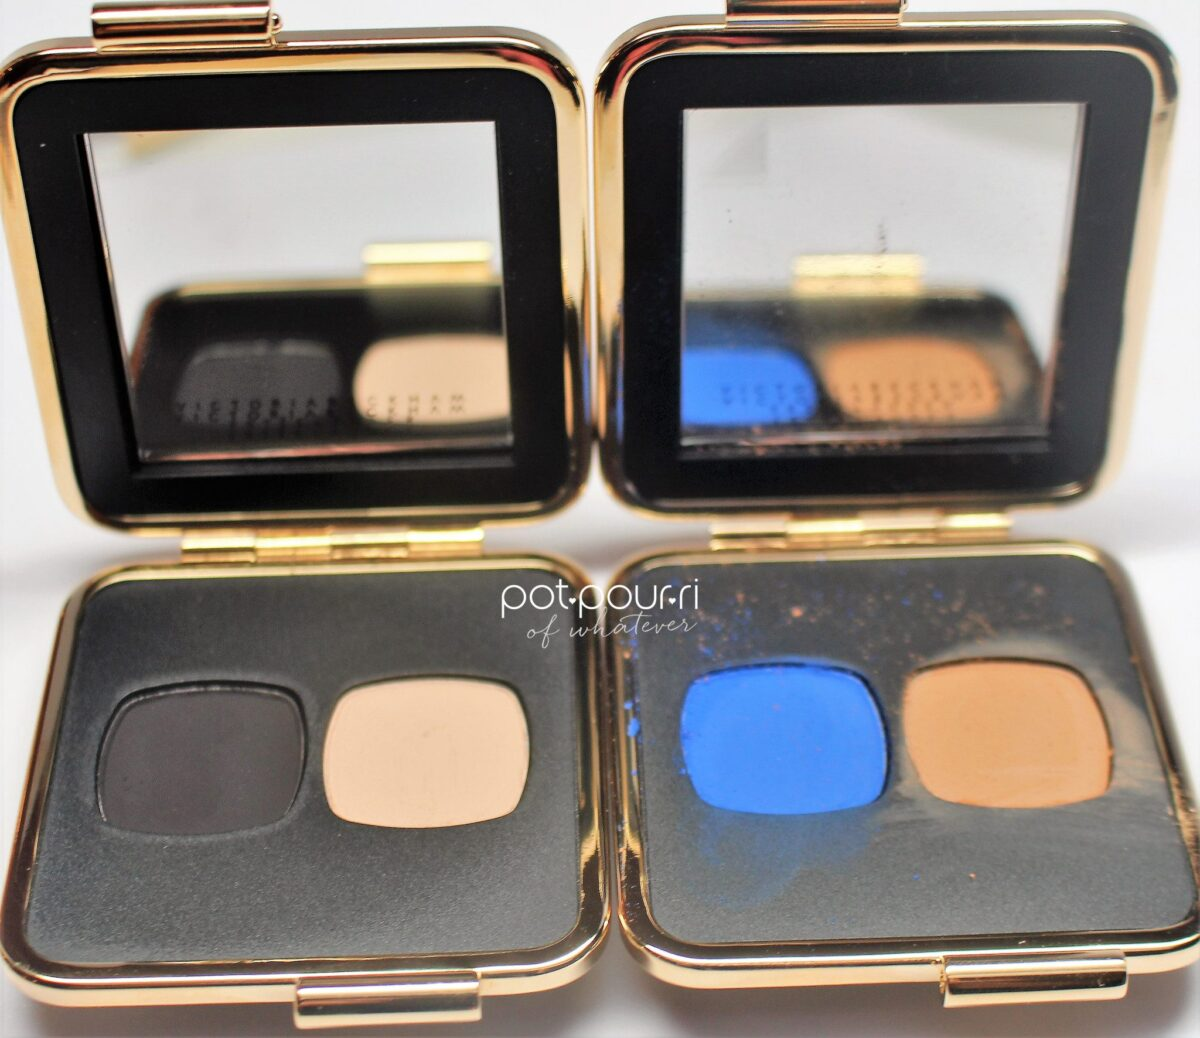 the two palettes I own are the black/cream and the bright blue and camel duos